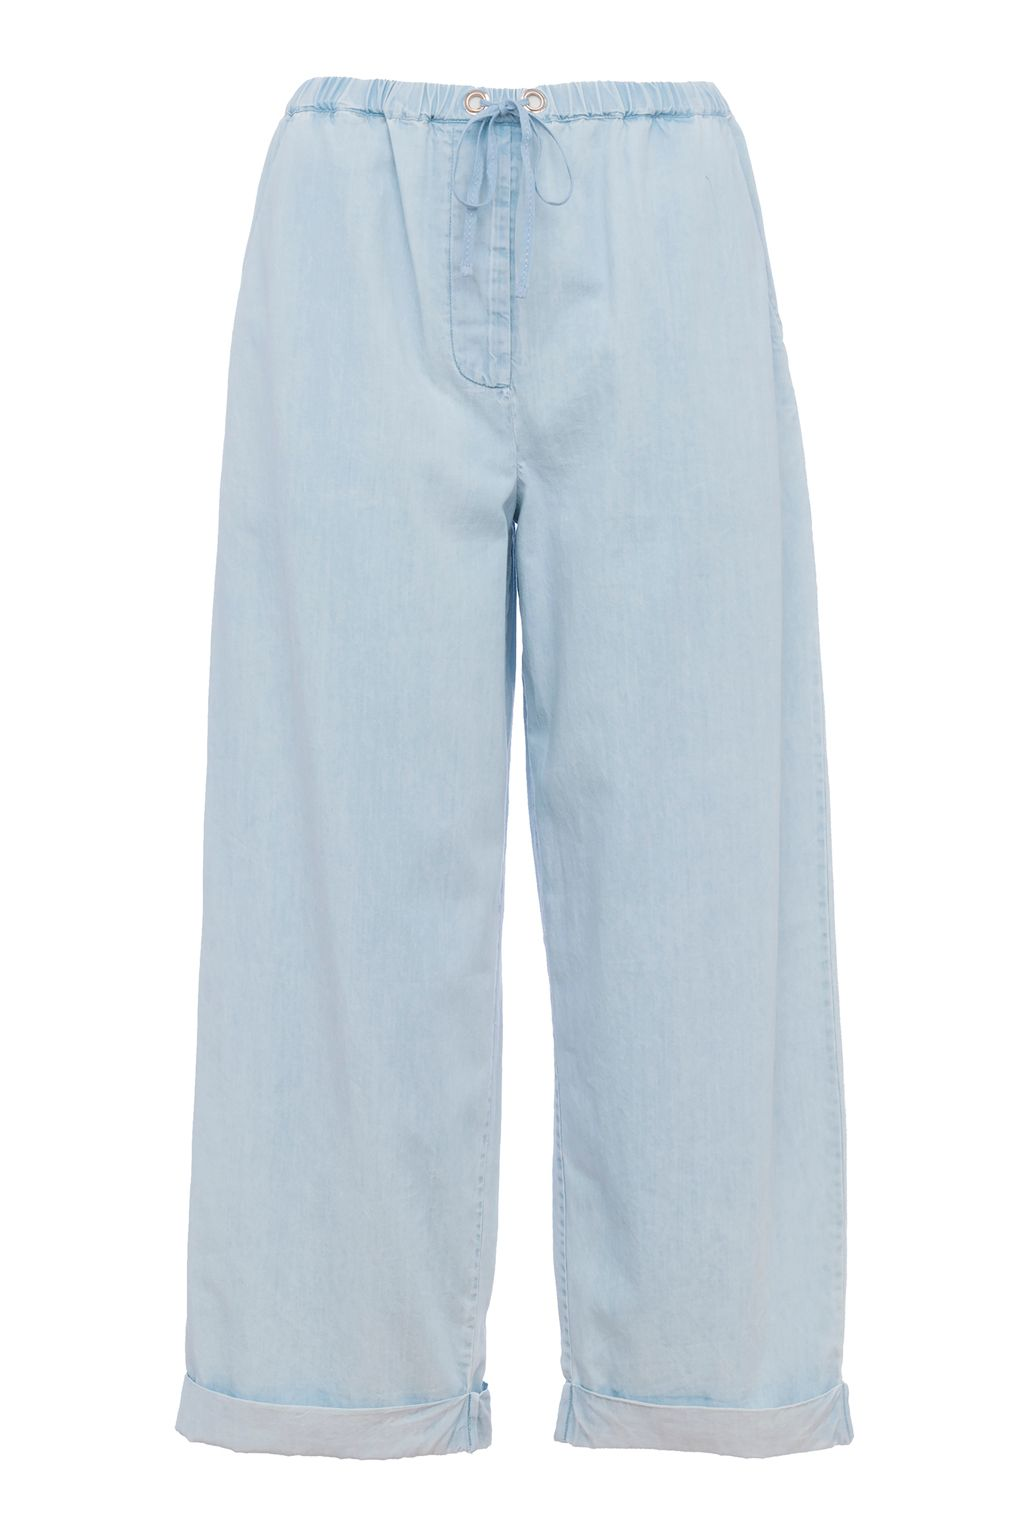 French Connection Salt Water Denim Culottes, Blue